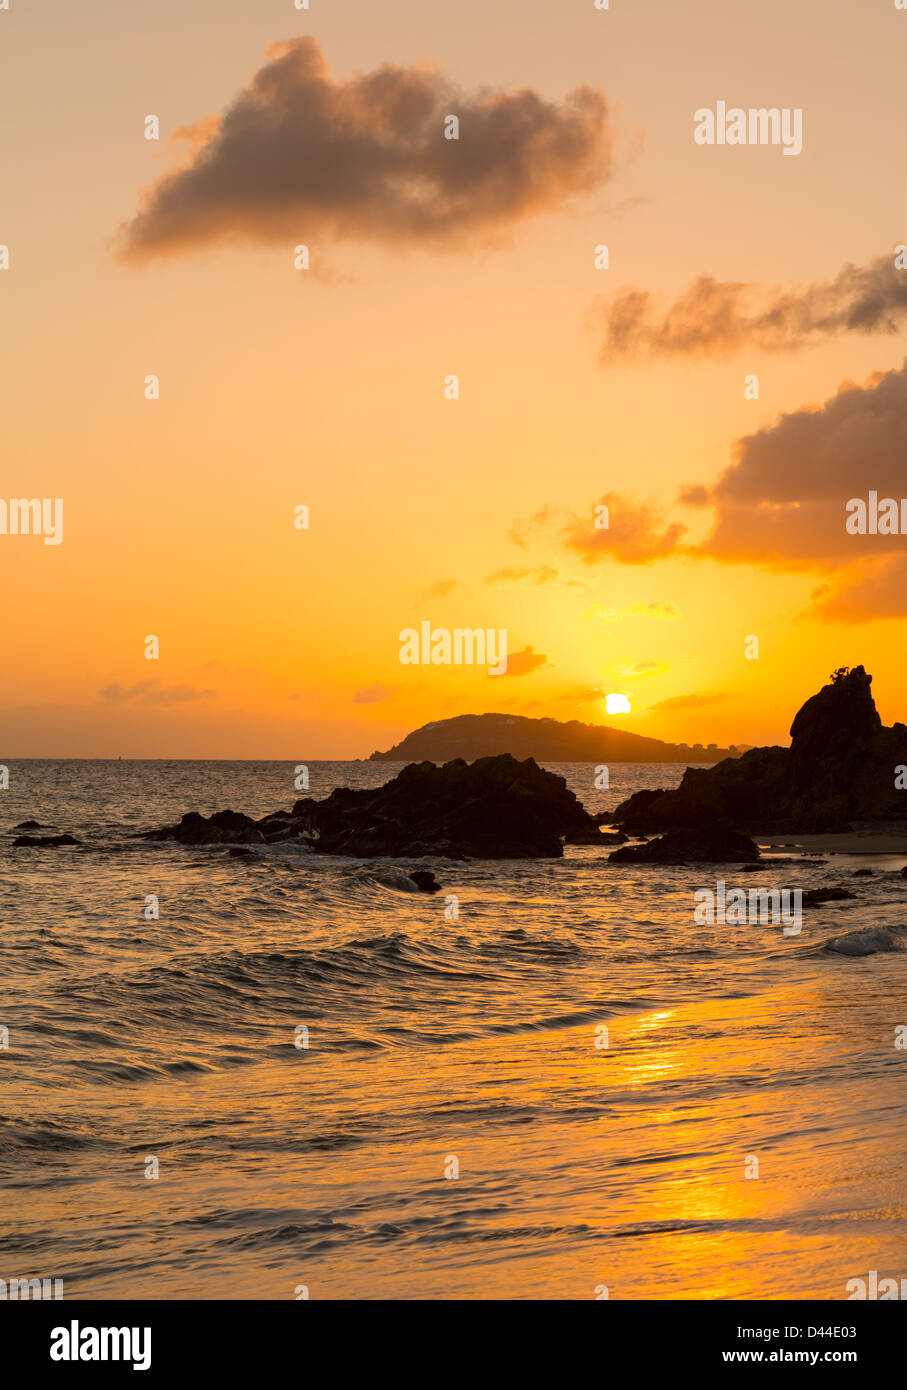 Sun setting over islands by Charlotte Amalie in St Thomas taken from Frenchmans Bay Stock Photo